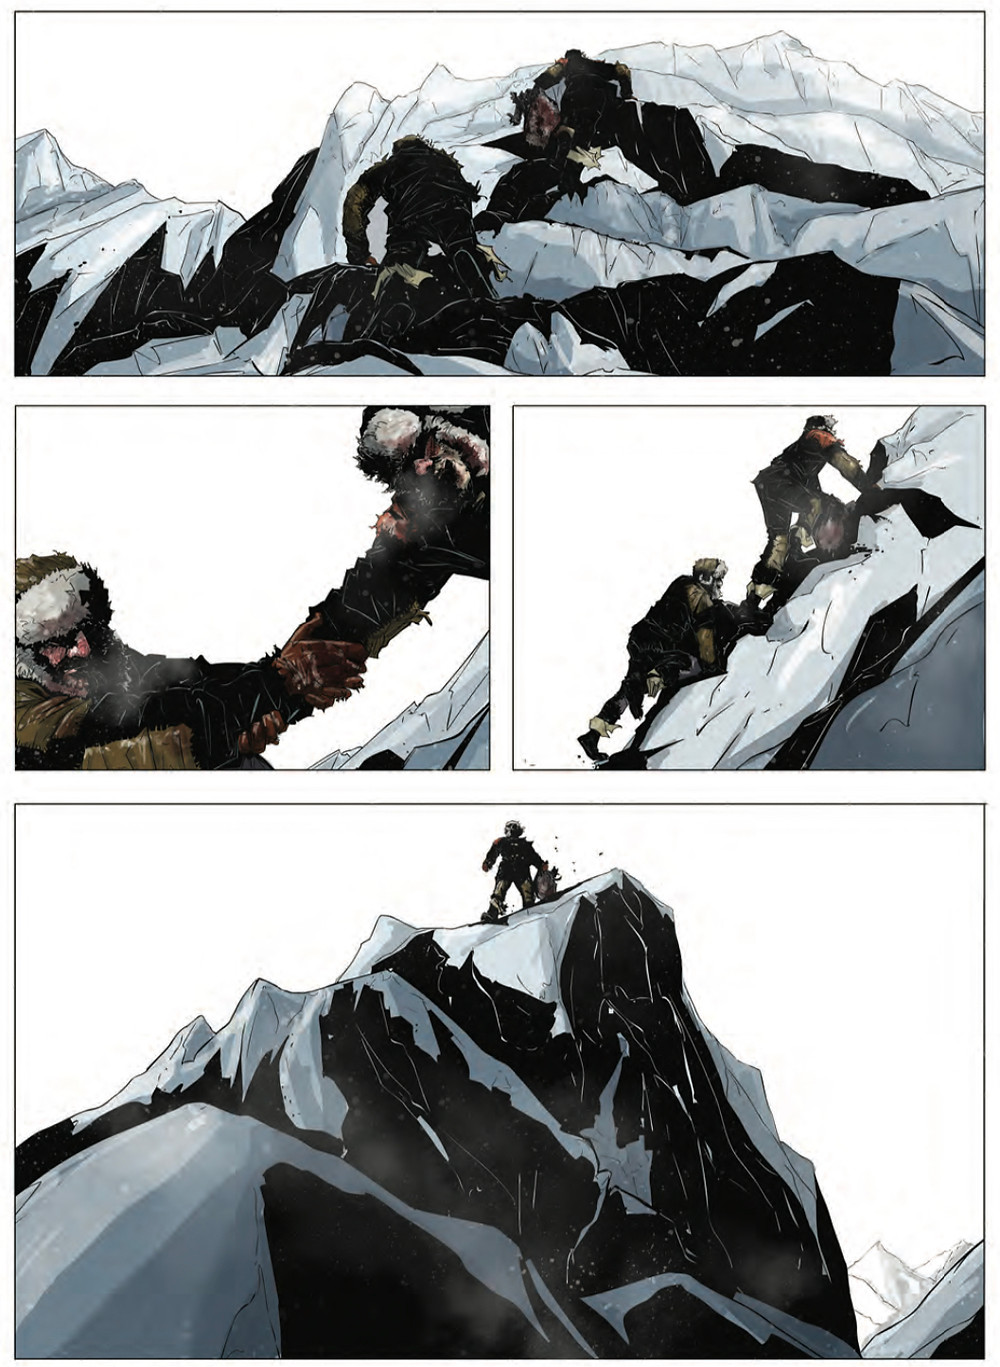 Road of Bones, issue #4, page 3, IDW, Douek/Cormack